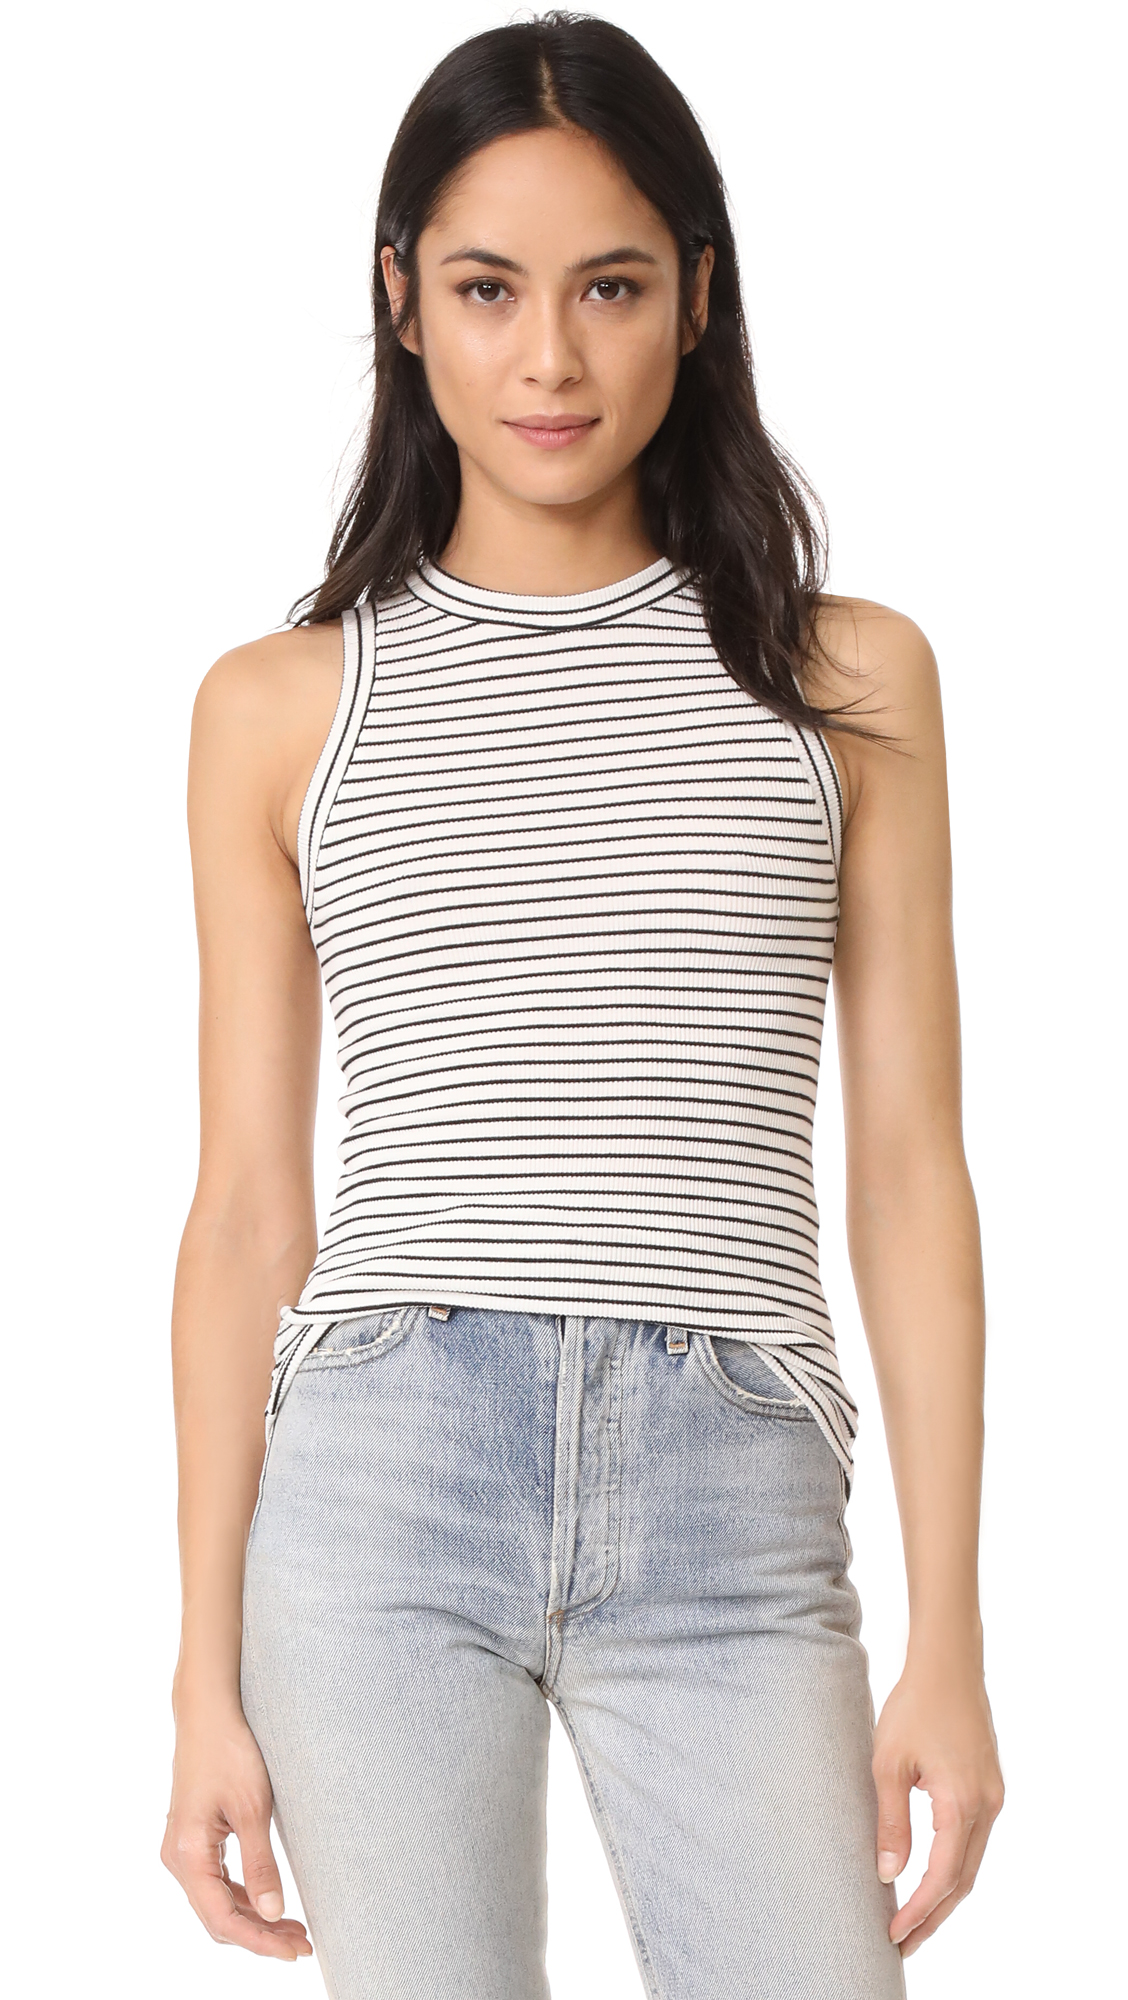 GETTING BACK TO SQUARE ONE The Rib Muscle Tee - Black/Vanilla Ice Stripe